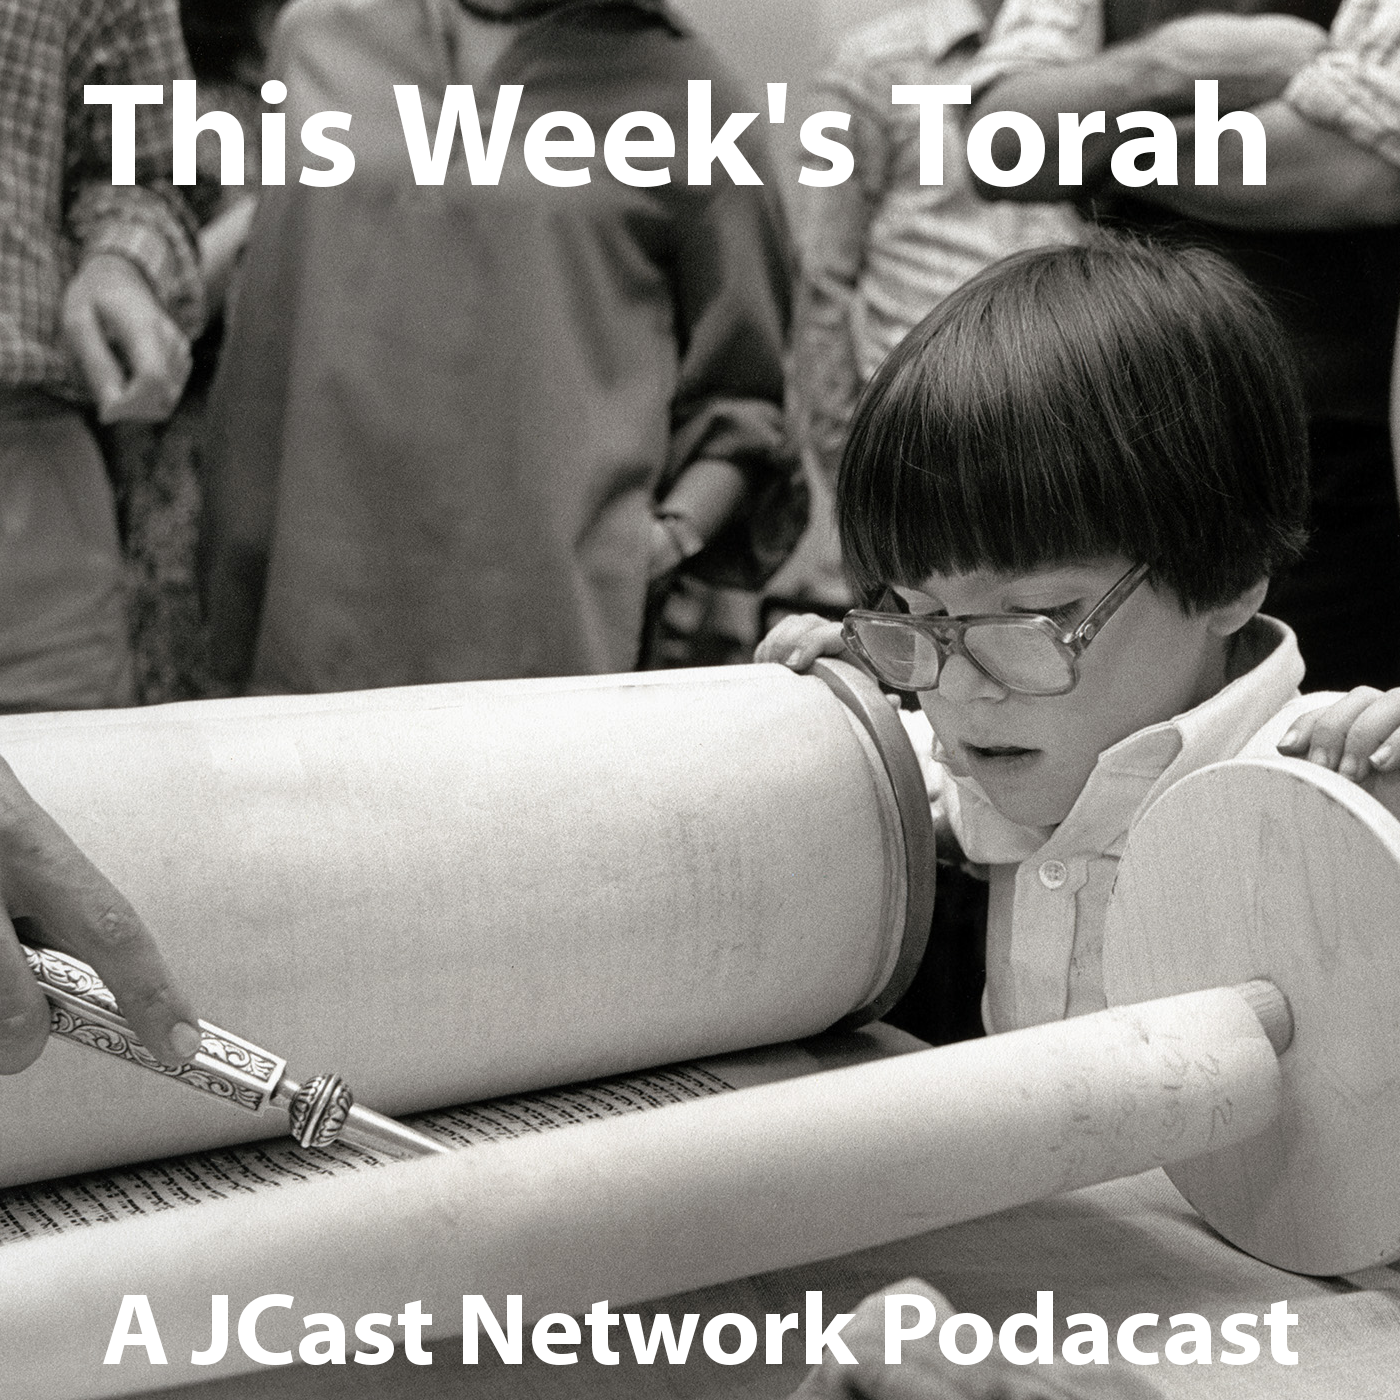 This Week's Torah